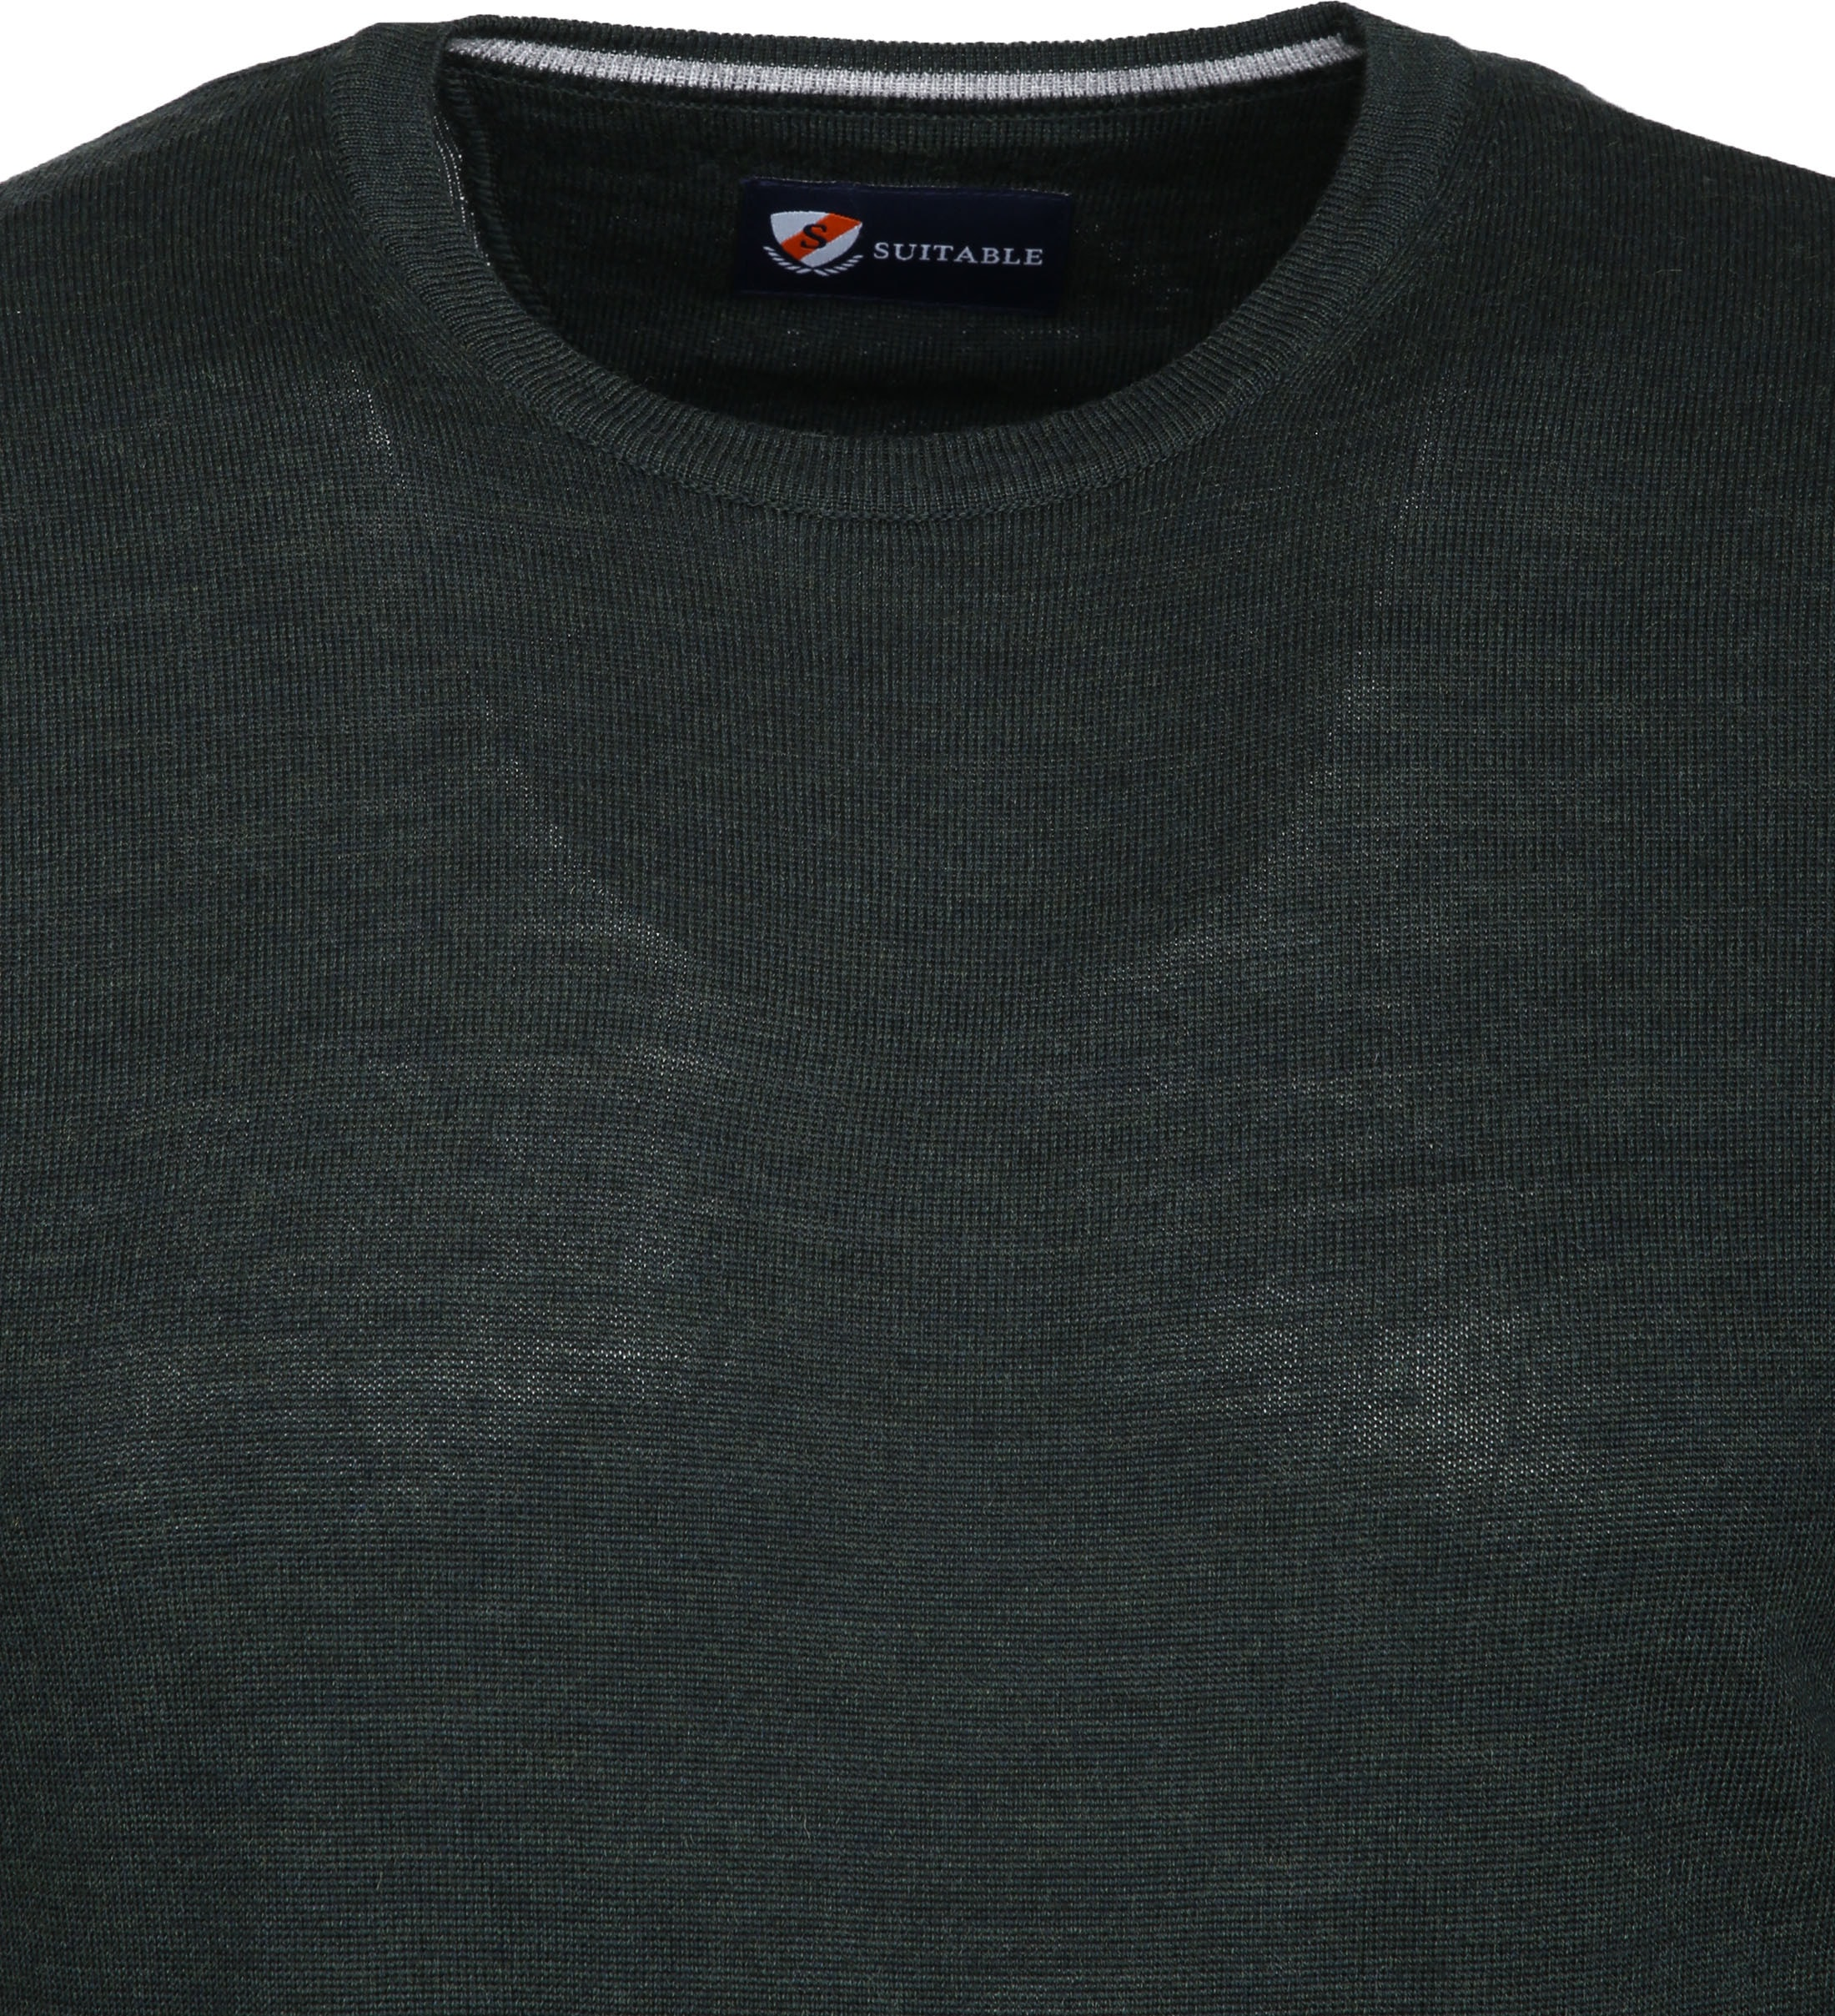 Suitable Merino Pullover R-Neck Dark Green foto 1